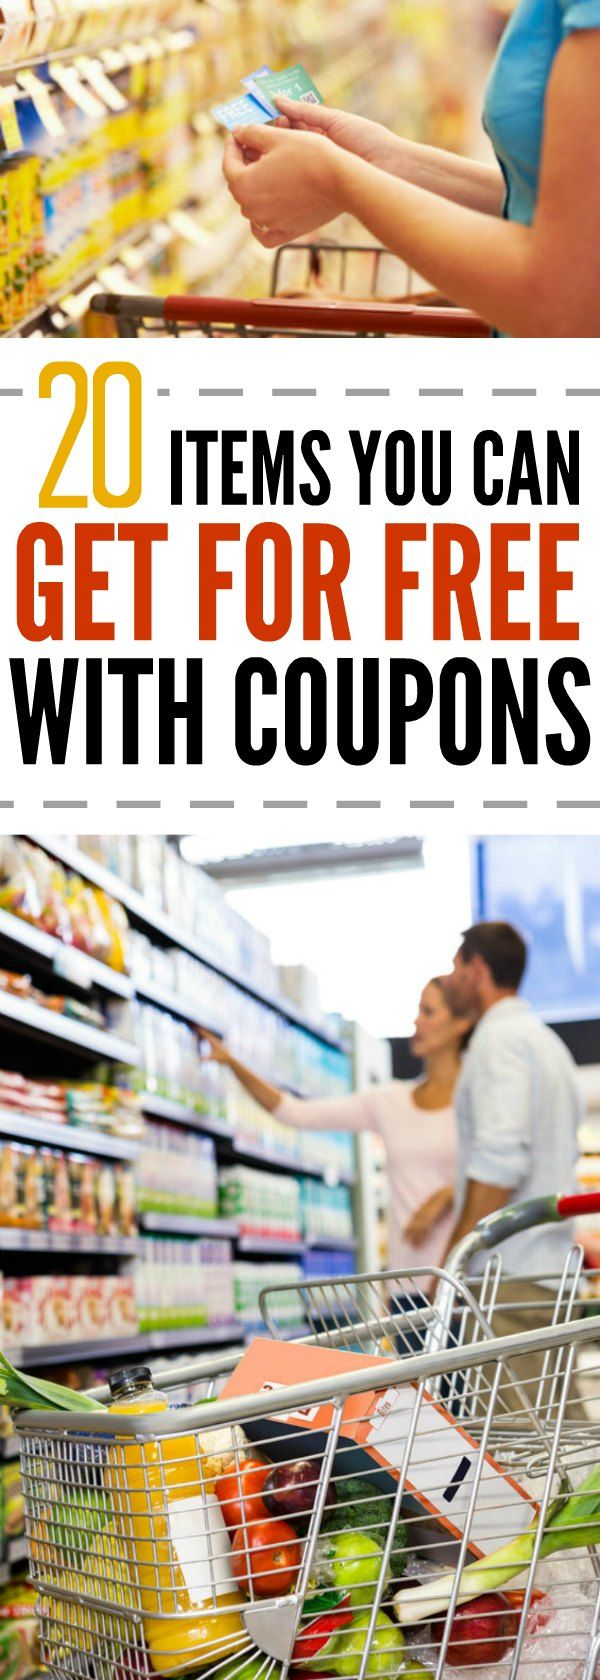 Kitchen Collections Coupons Tata Cliq Offers Official